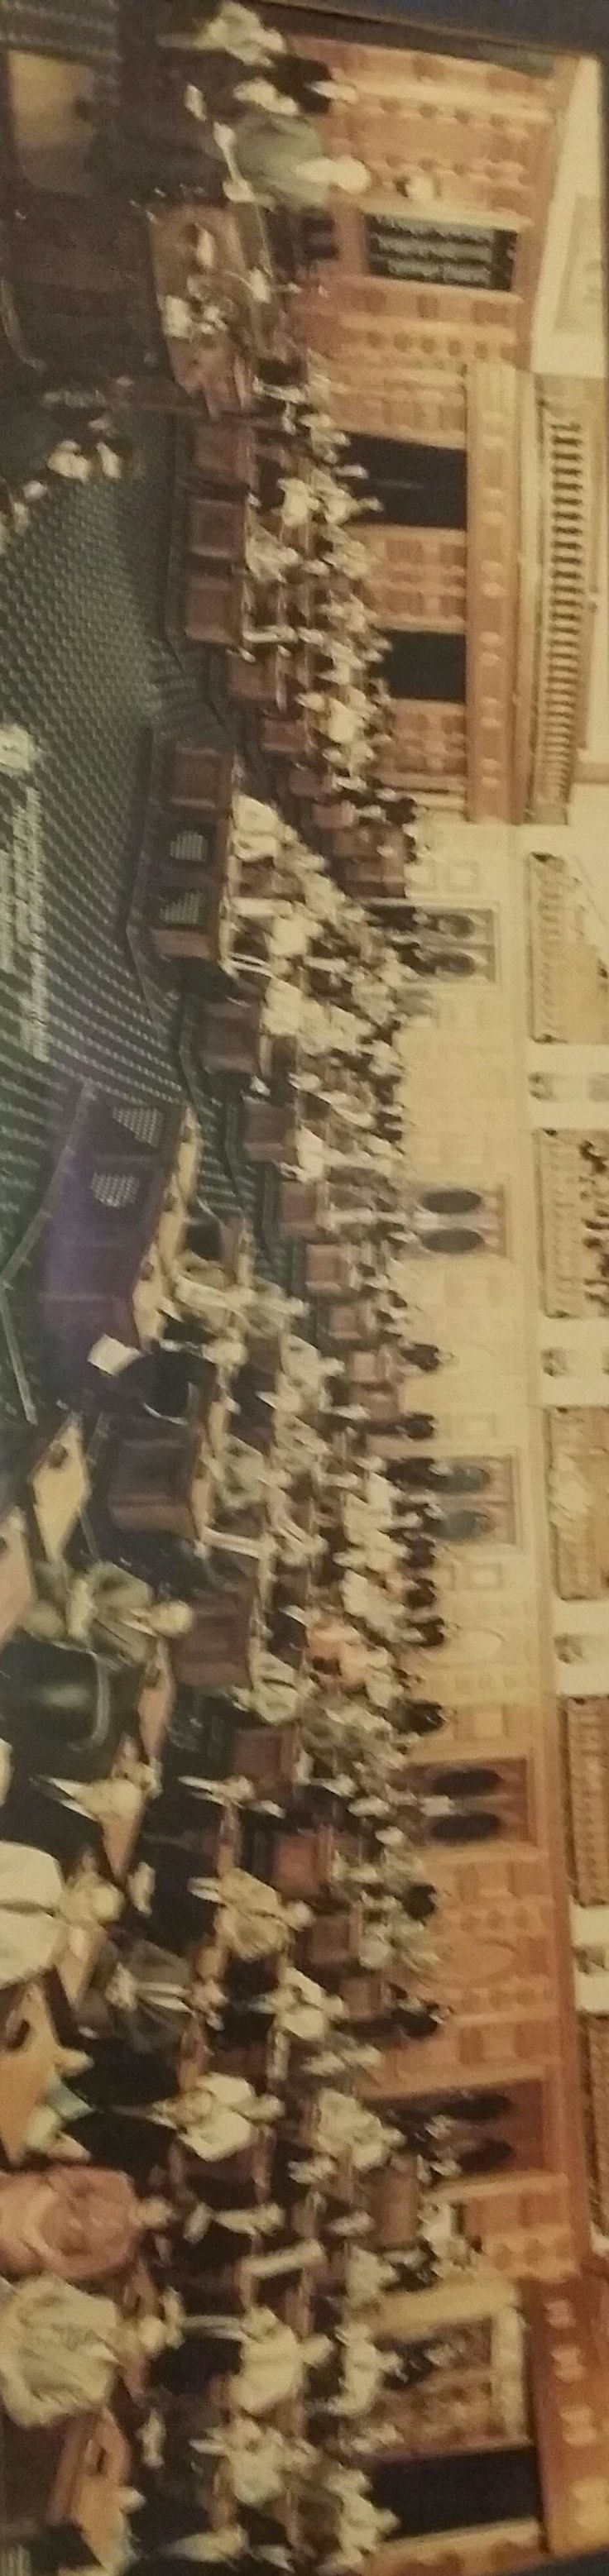 Massachusetts House of Representatives 1980